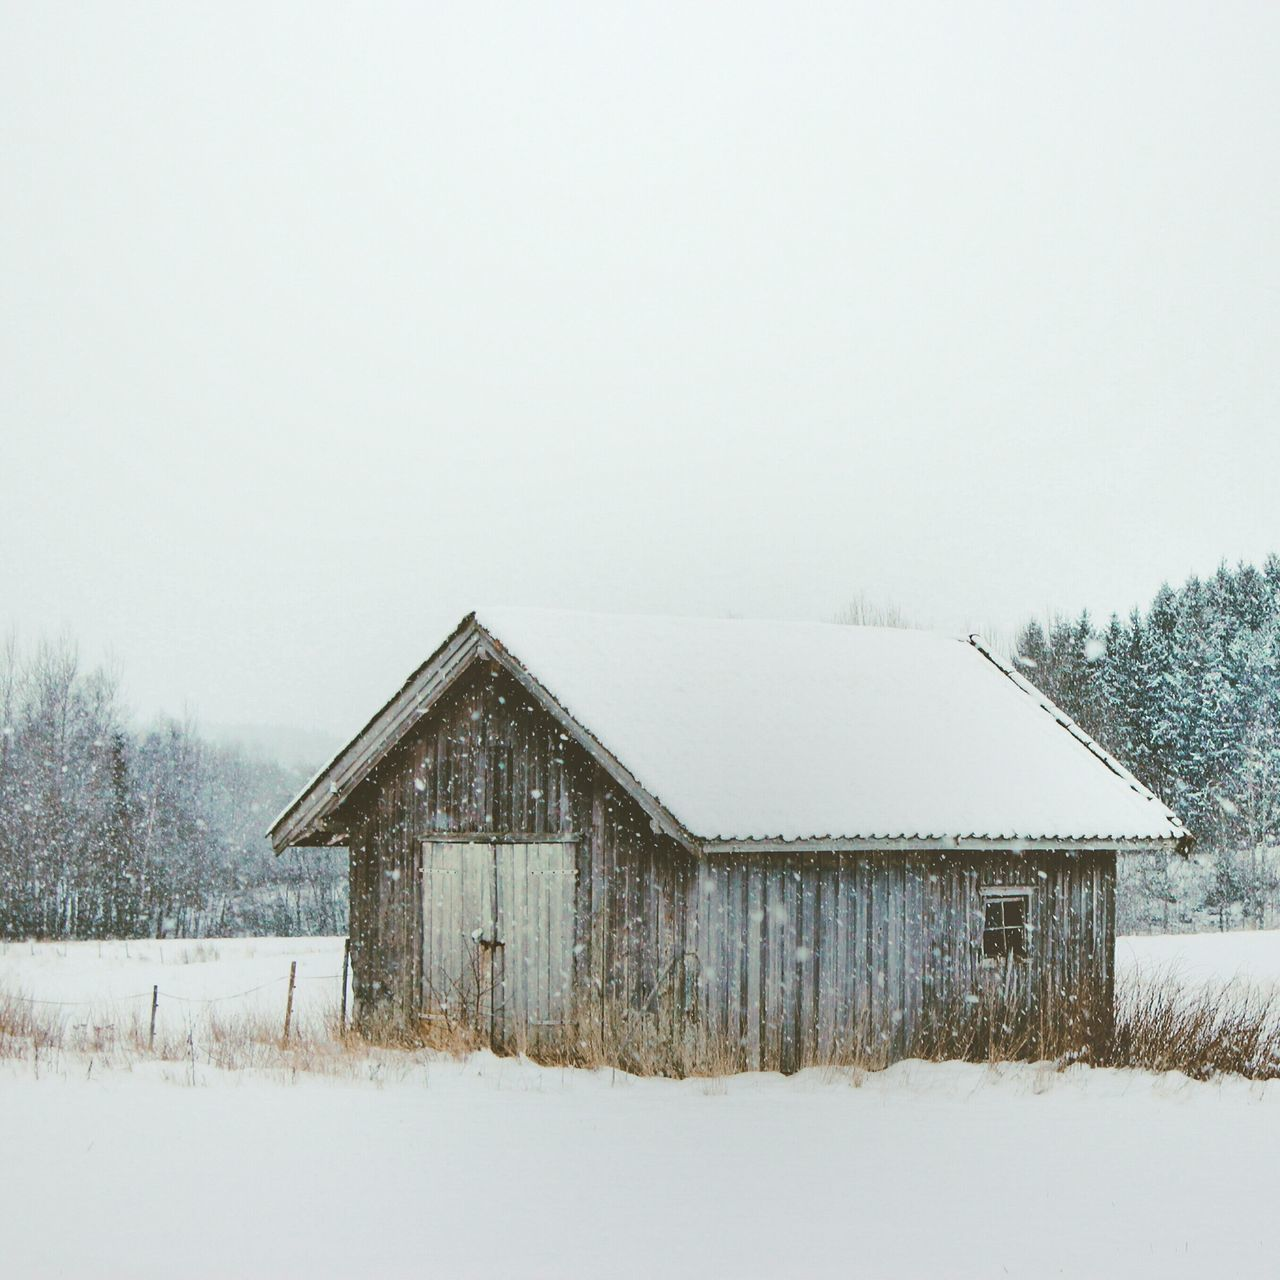 Barn Covered With Snow Against Clear Sky